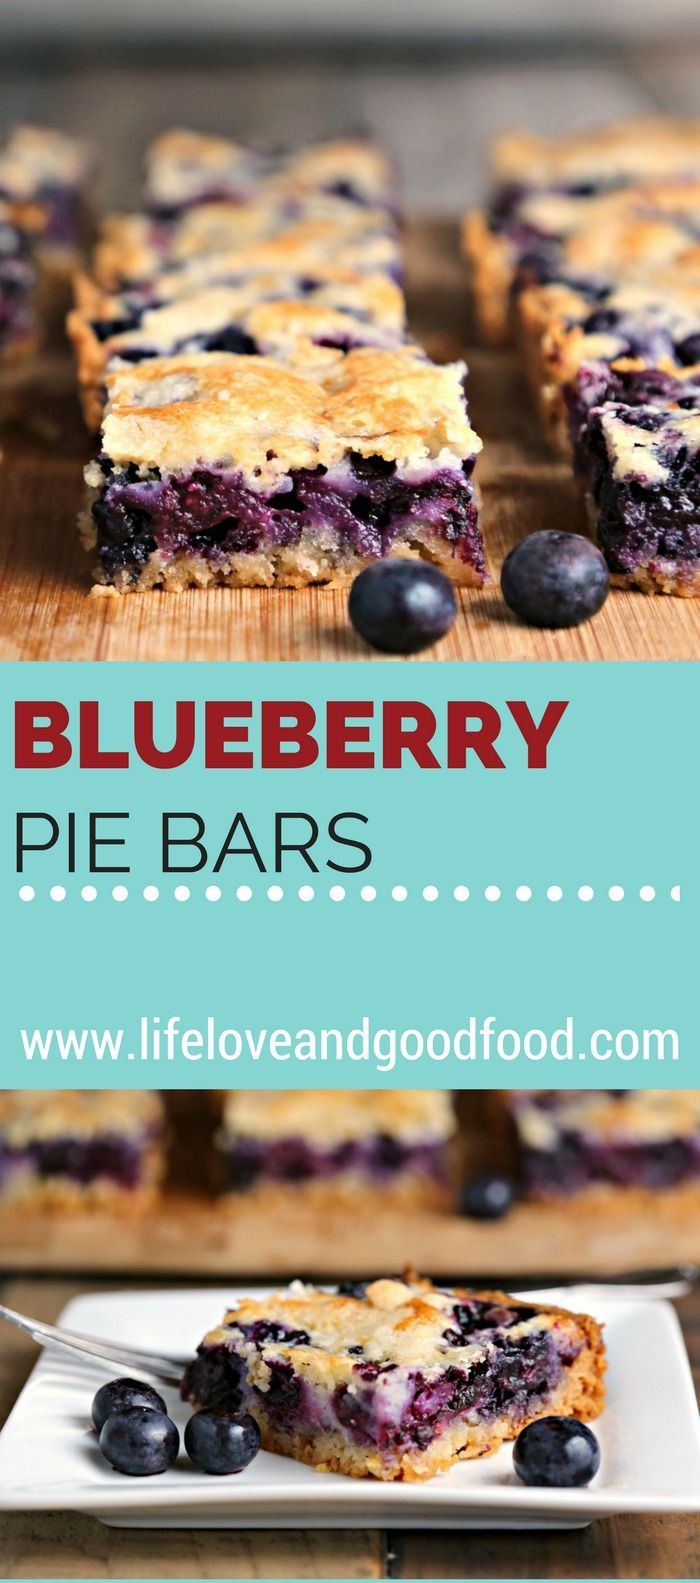 Blueberry Pie Bars | Life, Love, and Good Food #desserts: